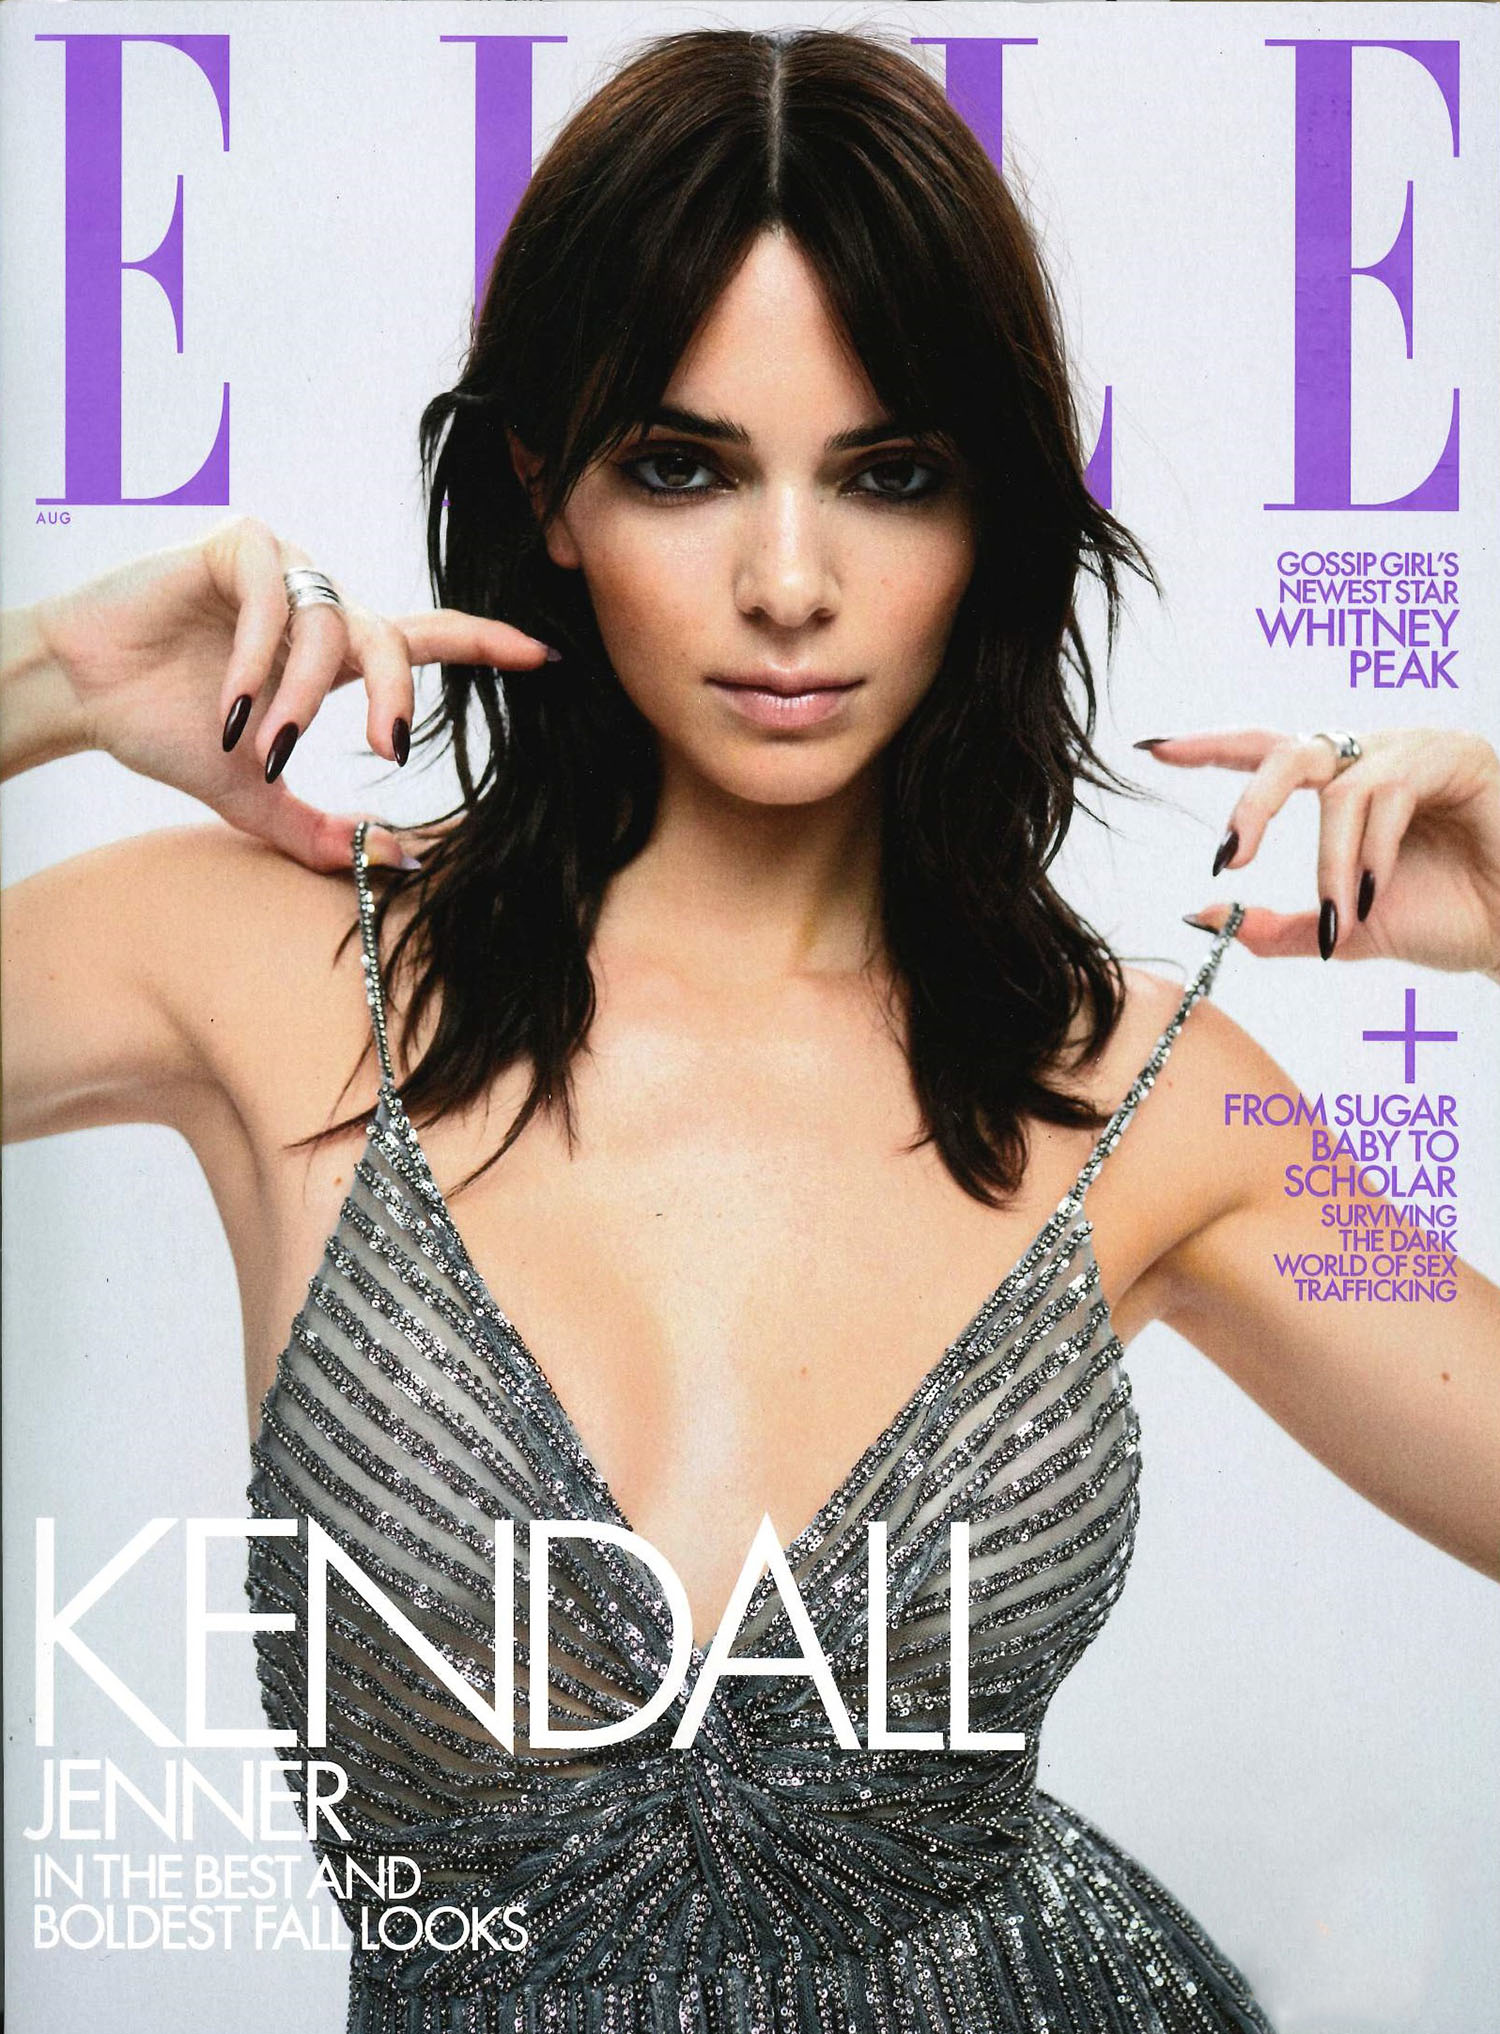 Kendall Jenner covers Elle US August 2021 by Zoey Grossman